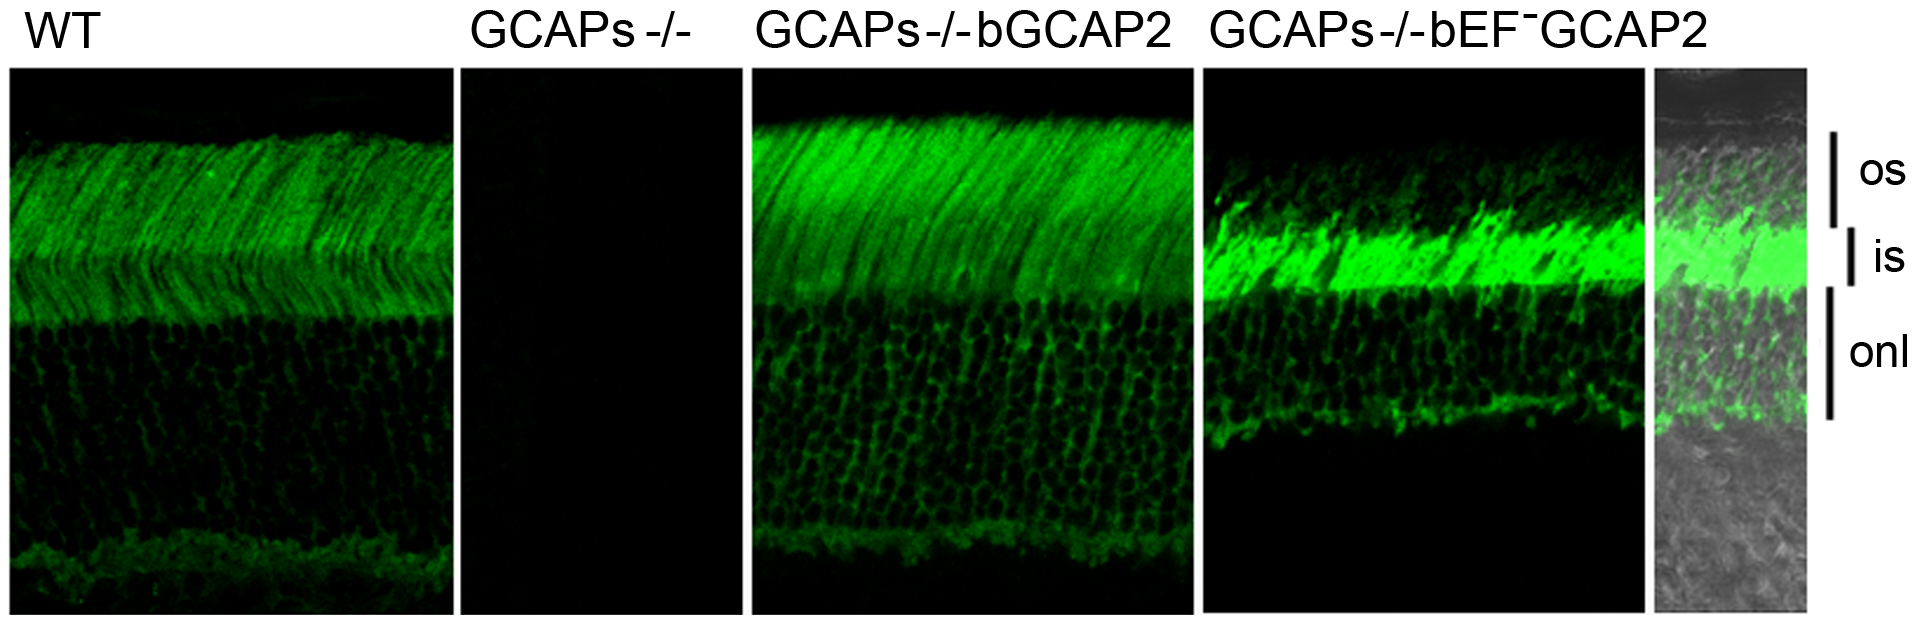 bEF<sup>−</sup>GCAP2 mislocalizes in transgenic retinas, accumulating at the inner segment compartment of the cell.